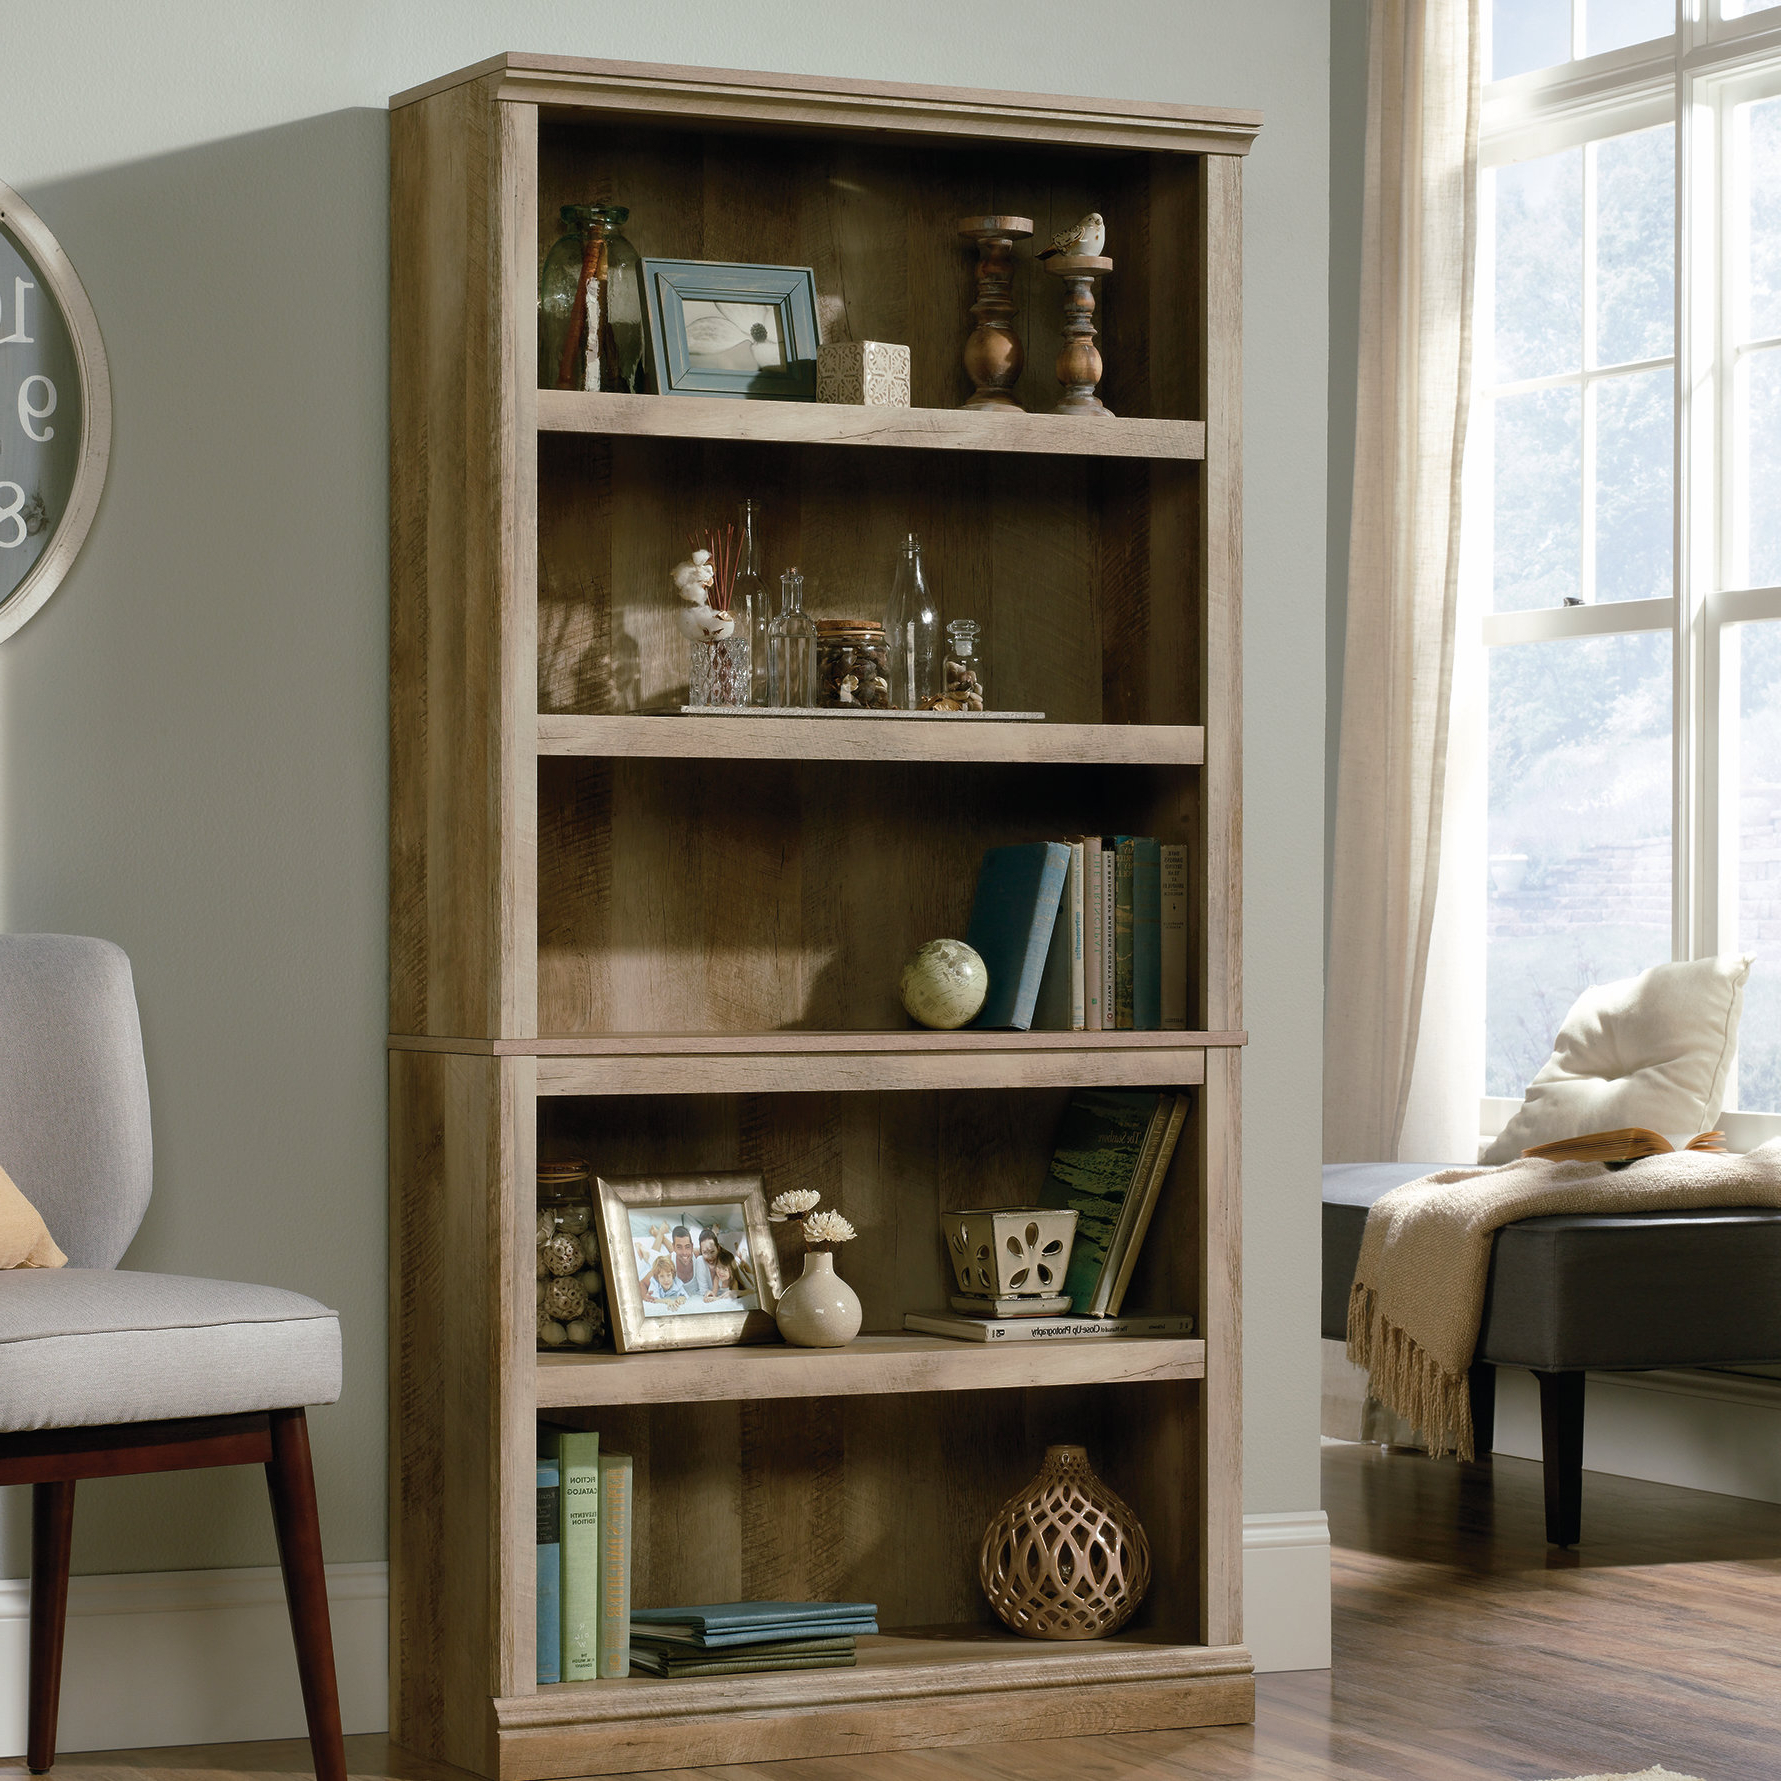 Preferred Abigail Standard Bookcase Intended For Kirkbride Standard Bookcases (Gallery 10 of 20)